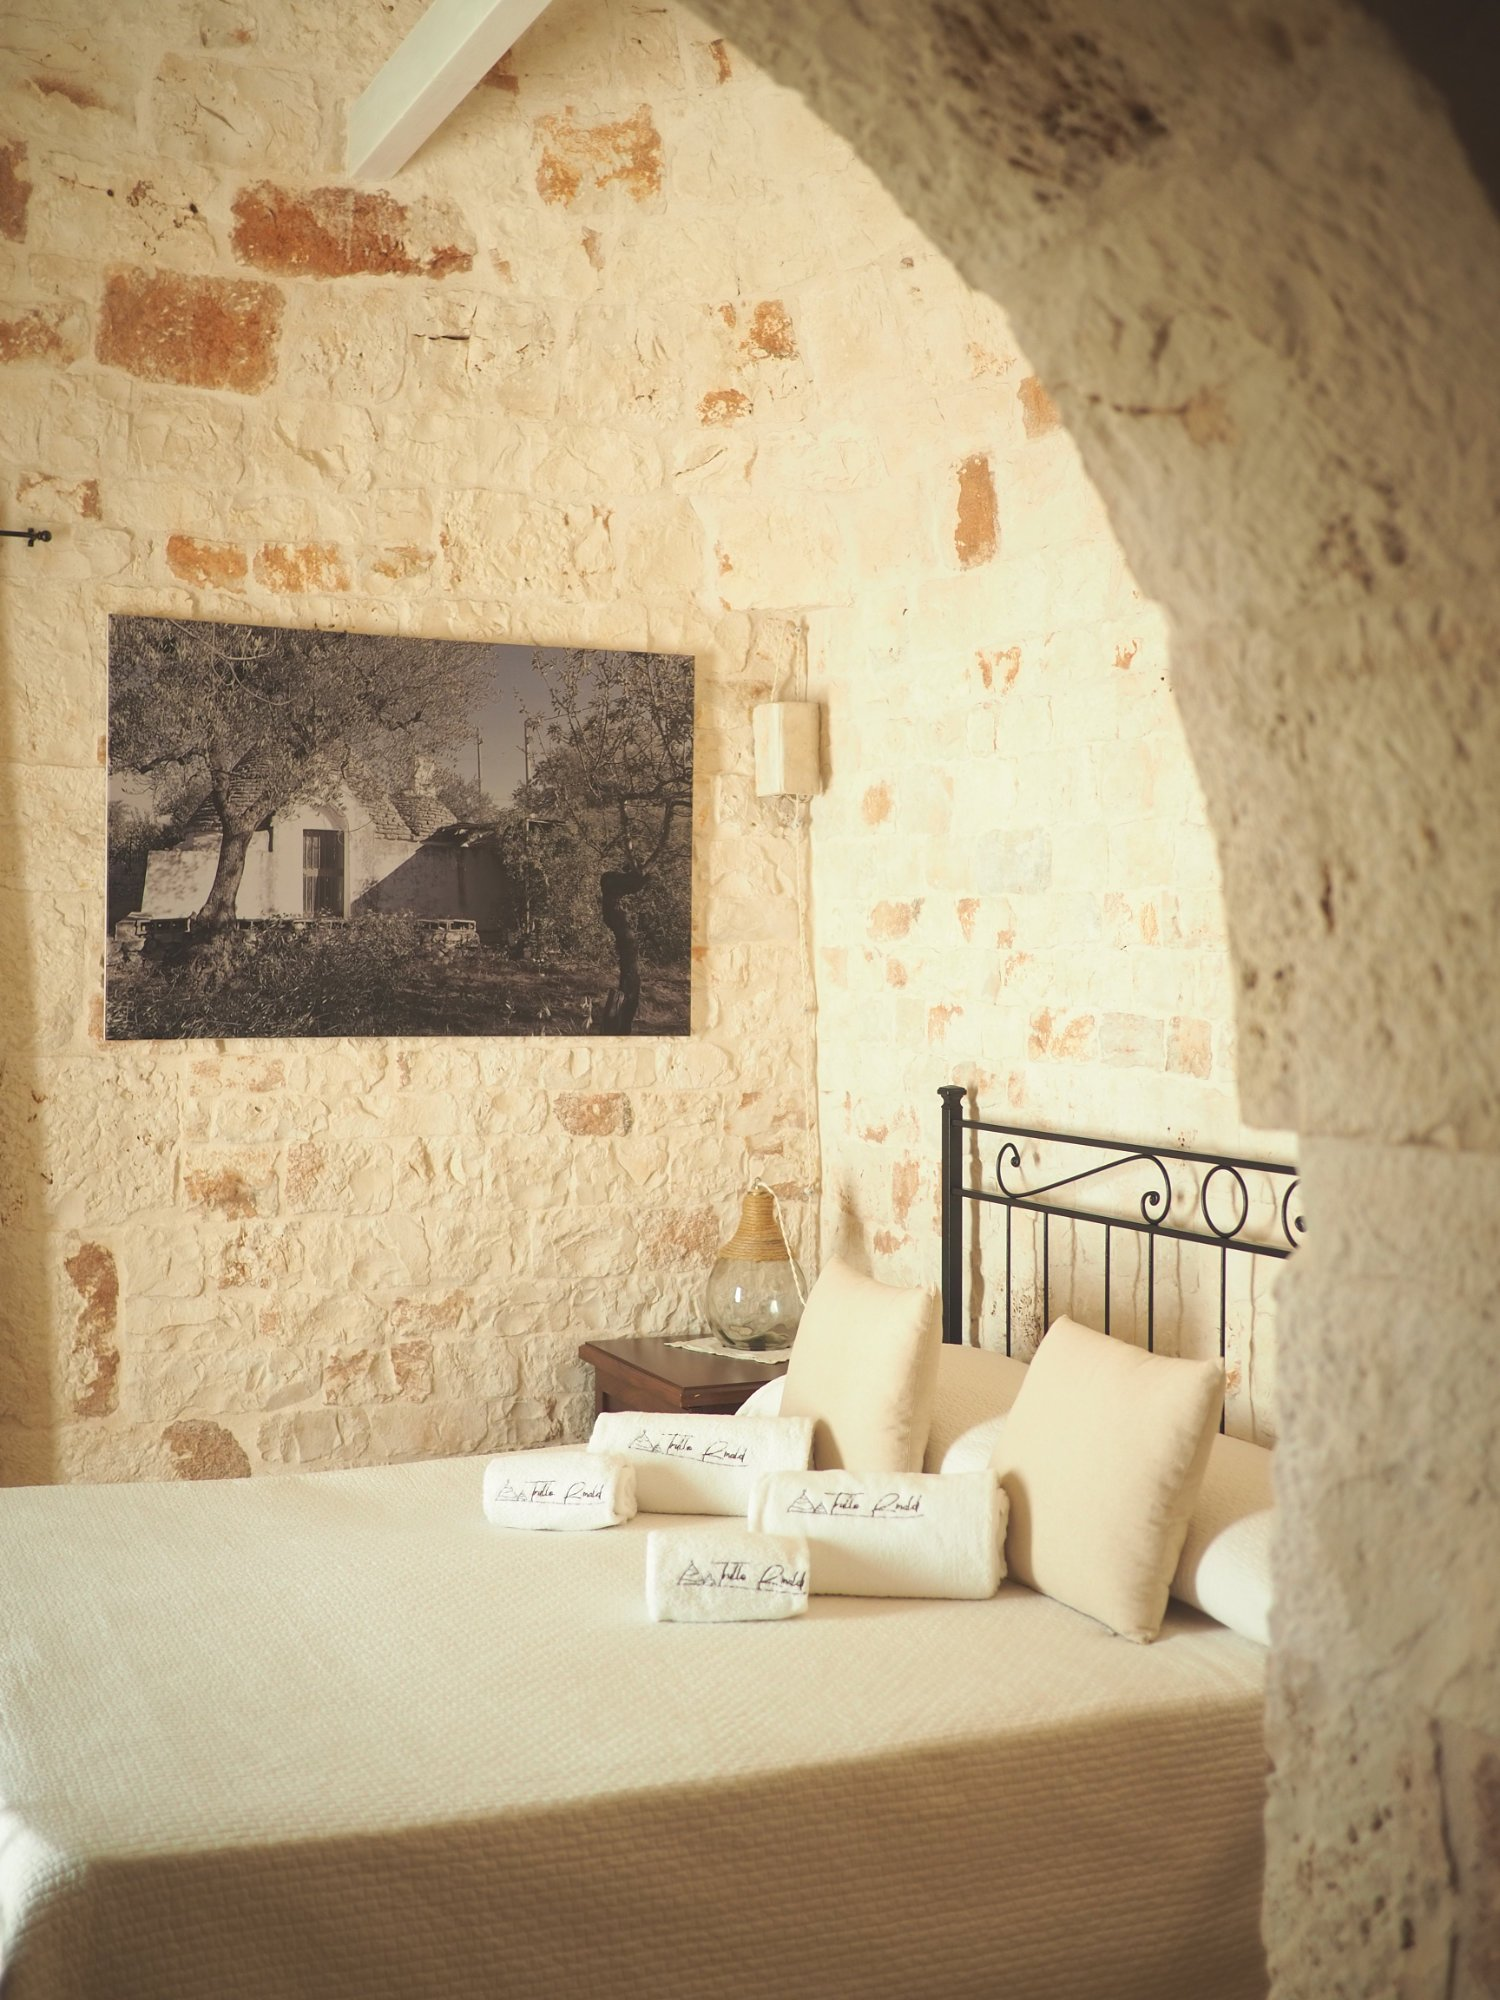 Trullo bedroom cozy hygge